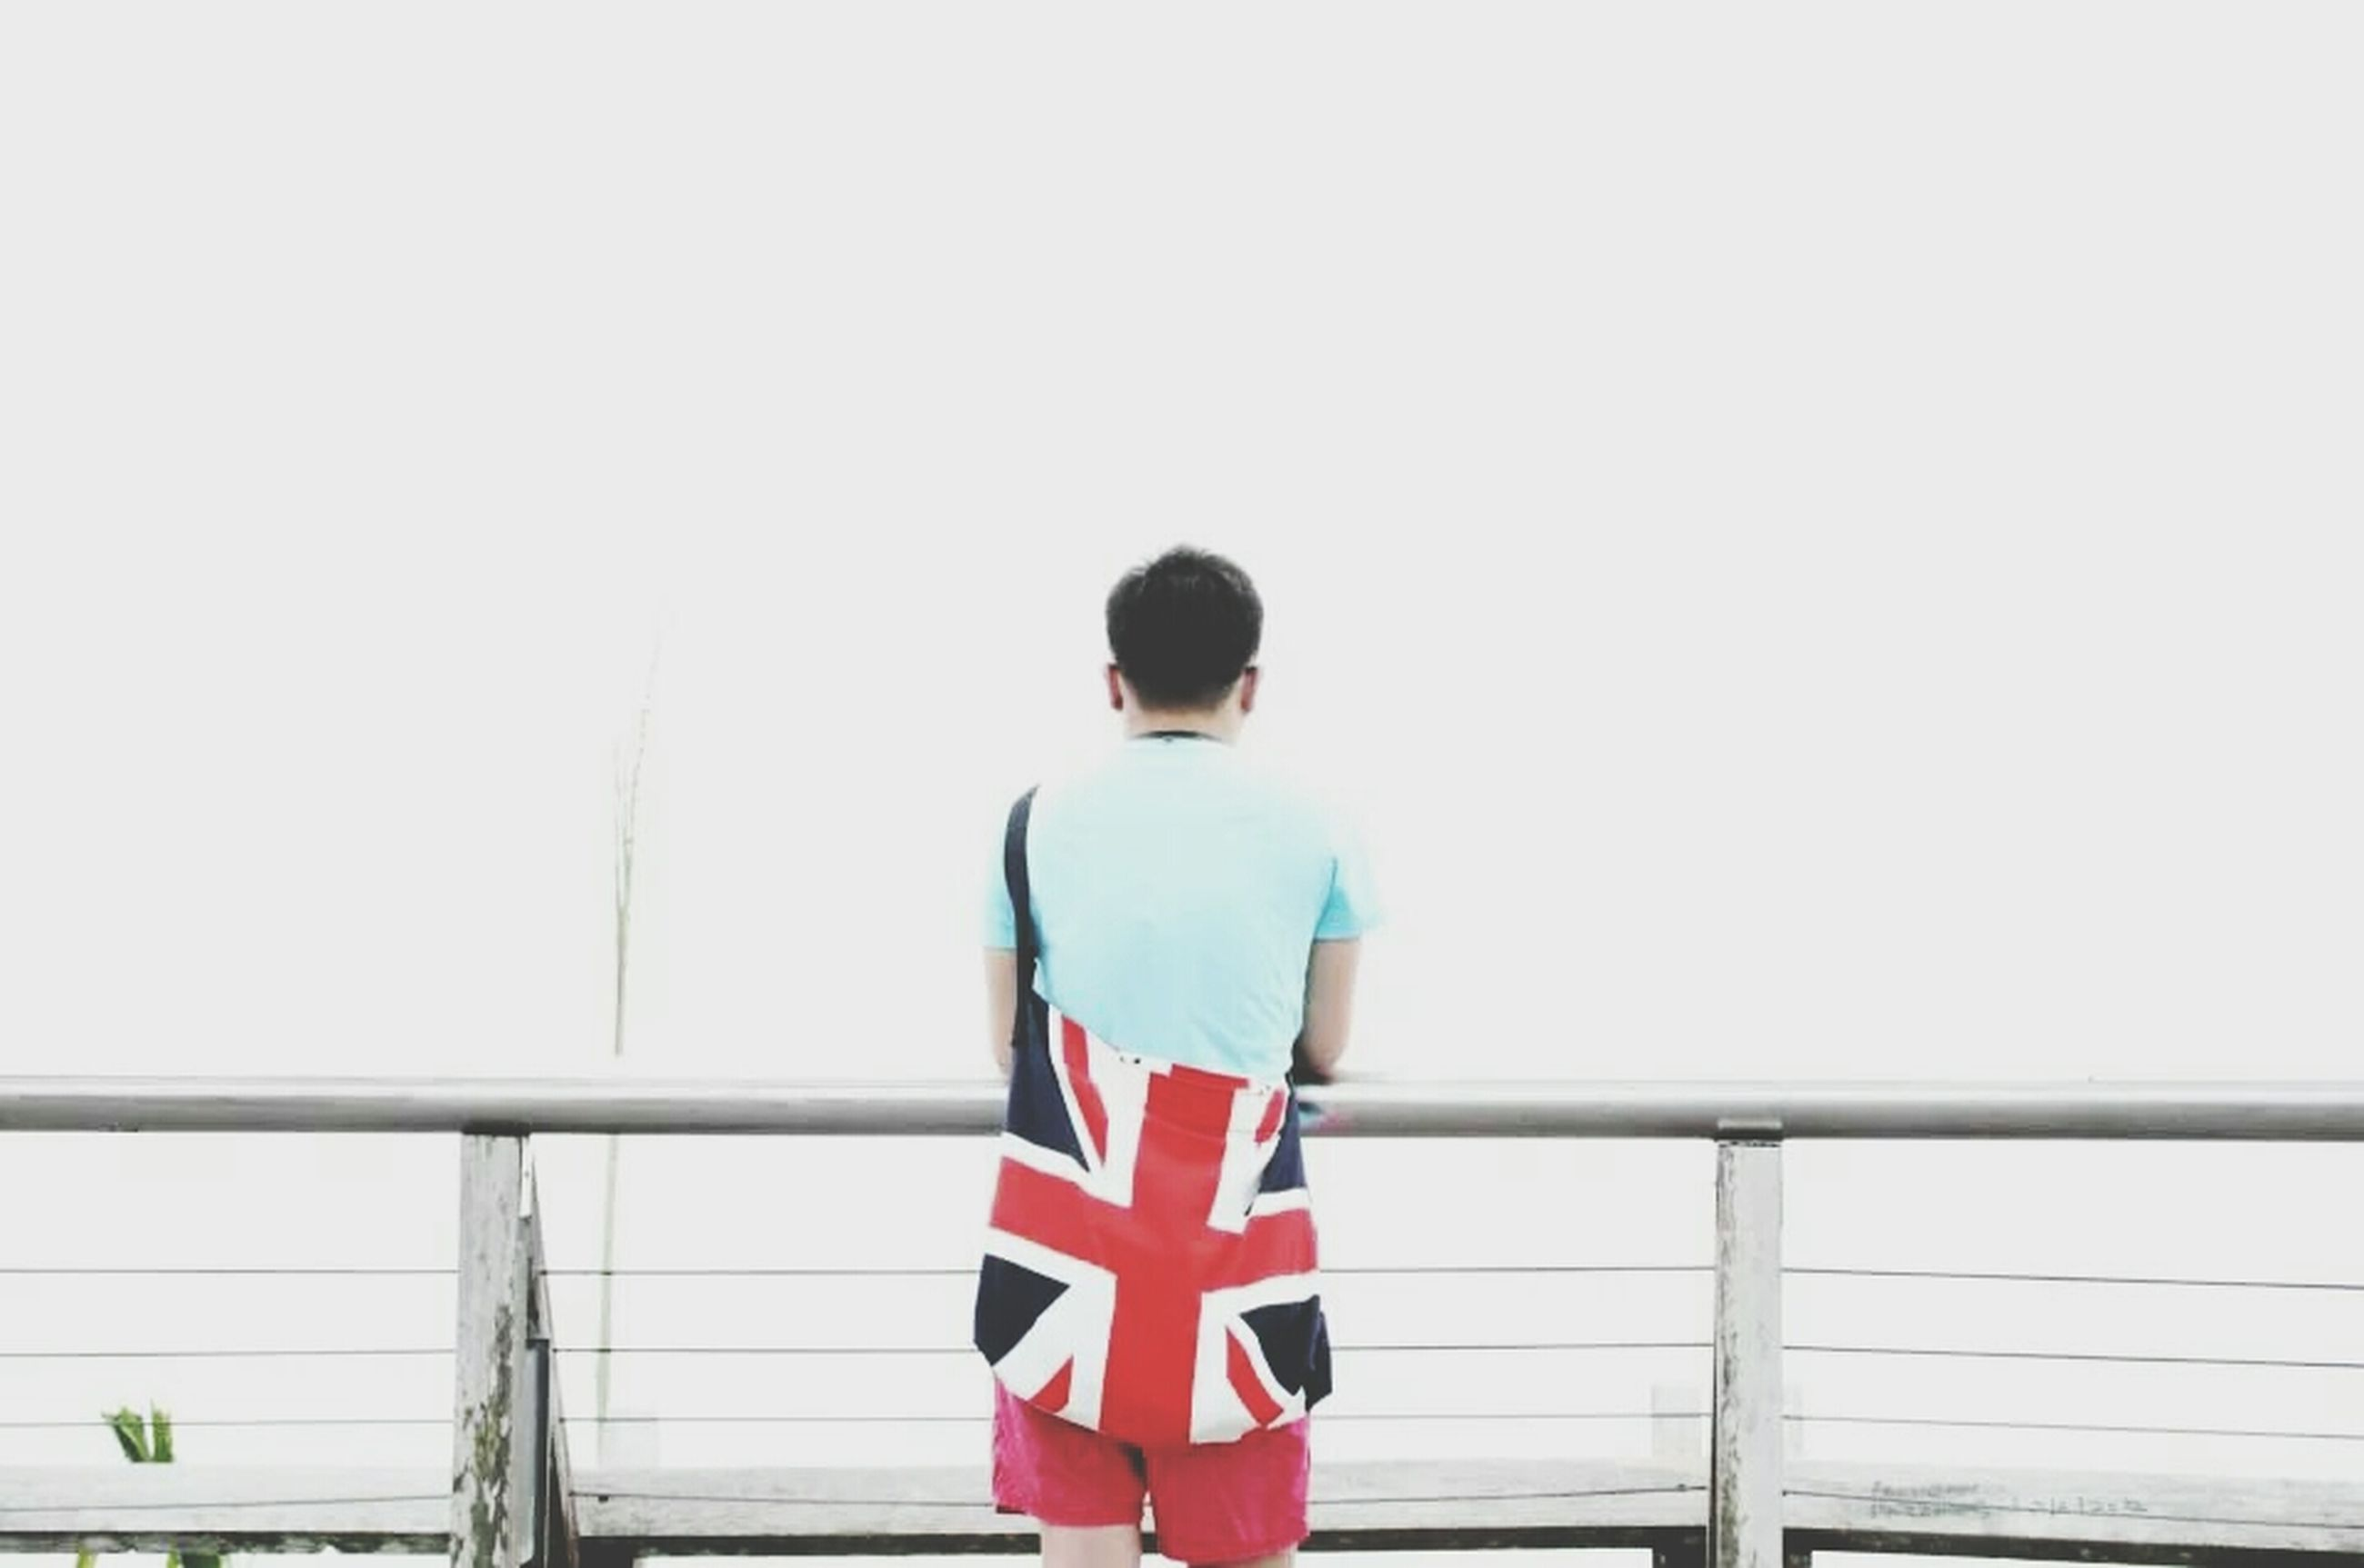 rear view, standing, lifestyles, casual clothing, copy space, leisure activity, clear sky, railing, red, full length, striped, three quarter length, day, person, side view, white color, flag, waist up